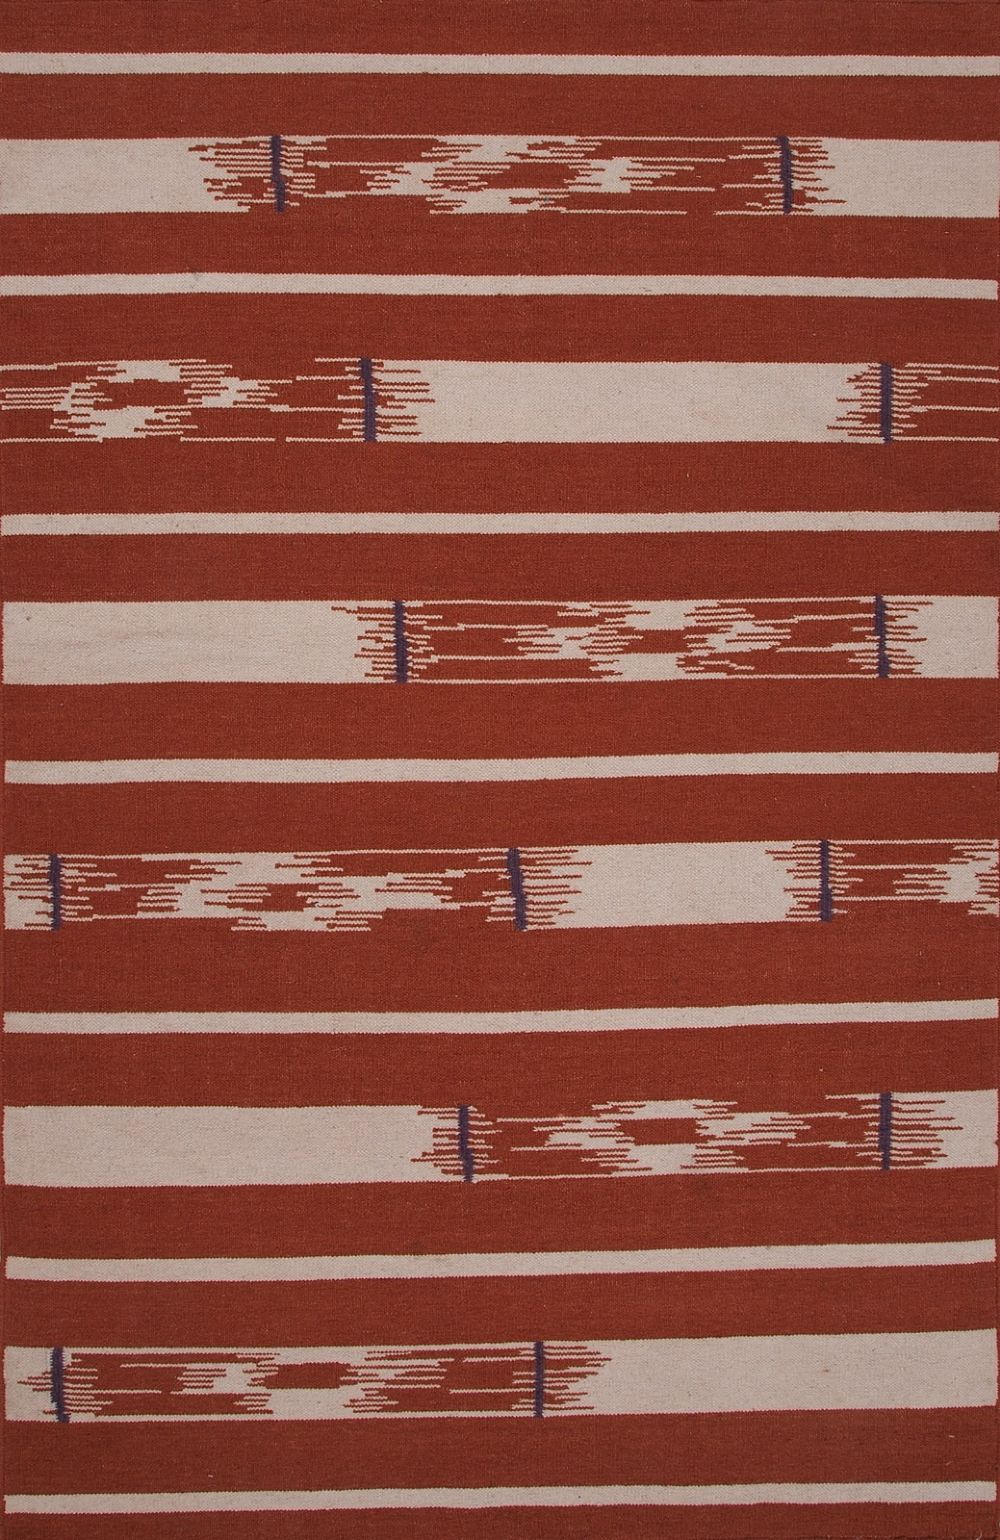 jaipur traditions made modern flat weave solid/striped area rug collection